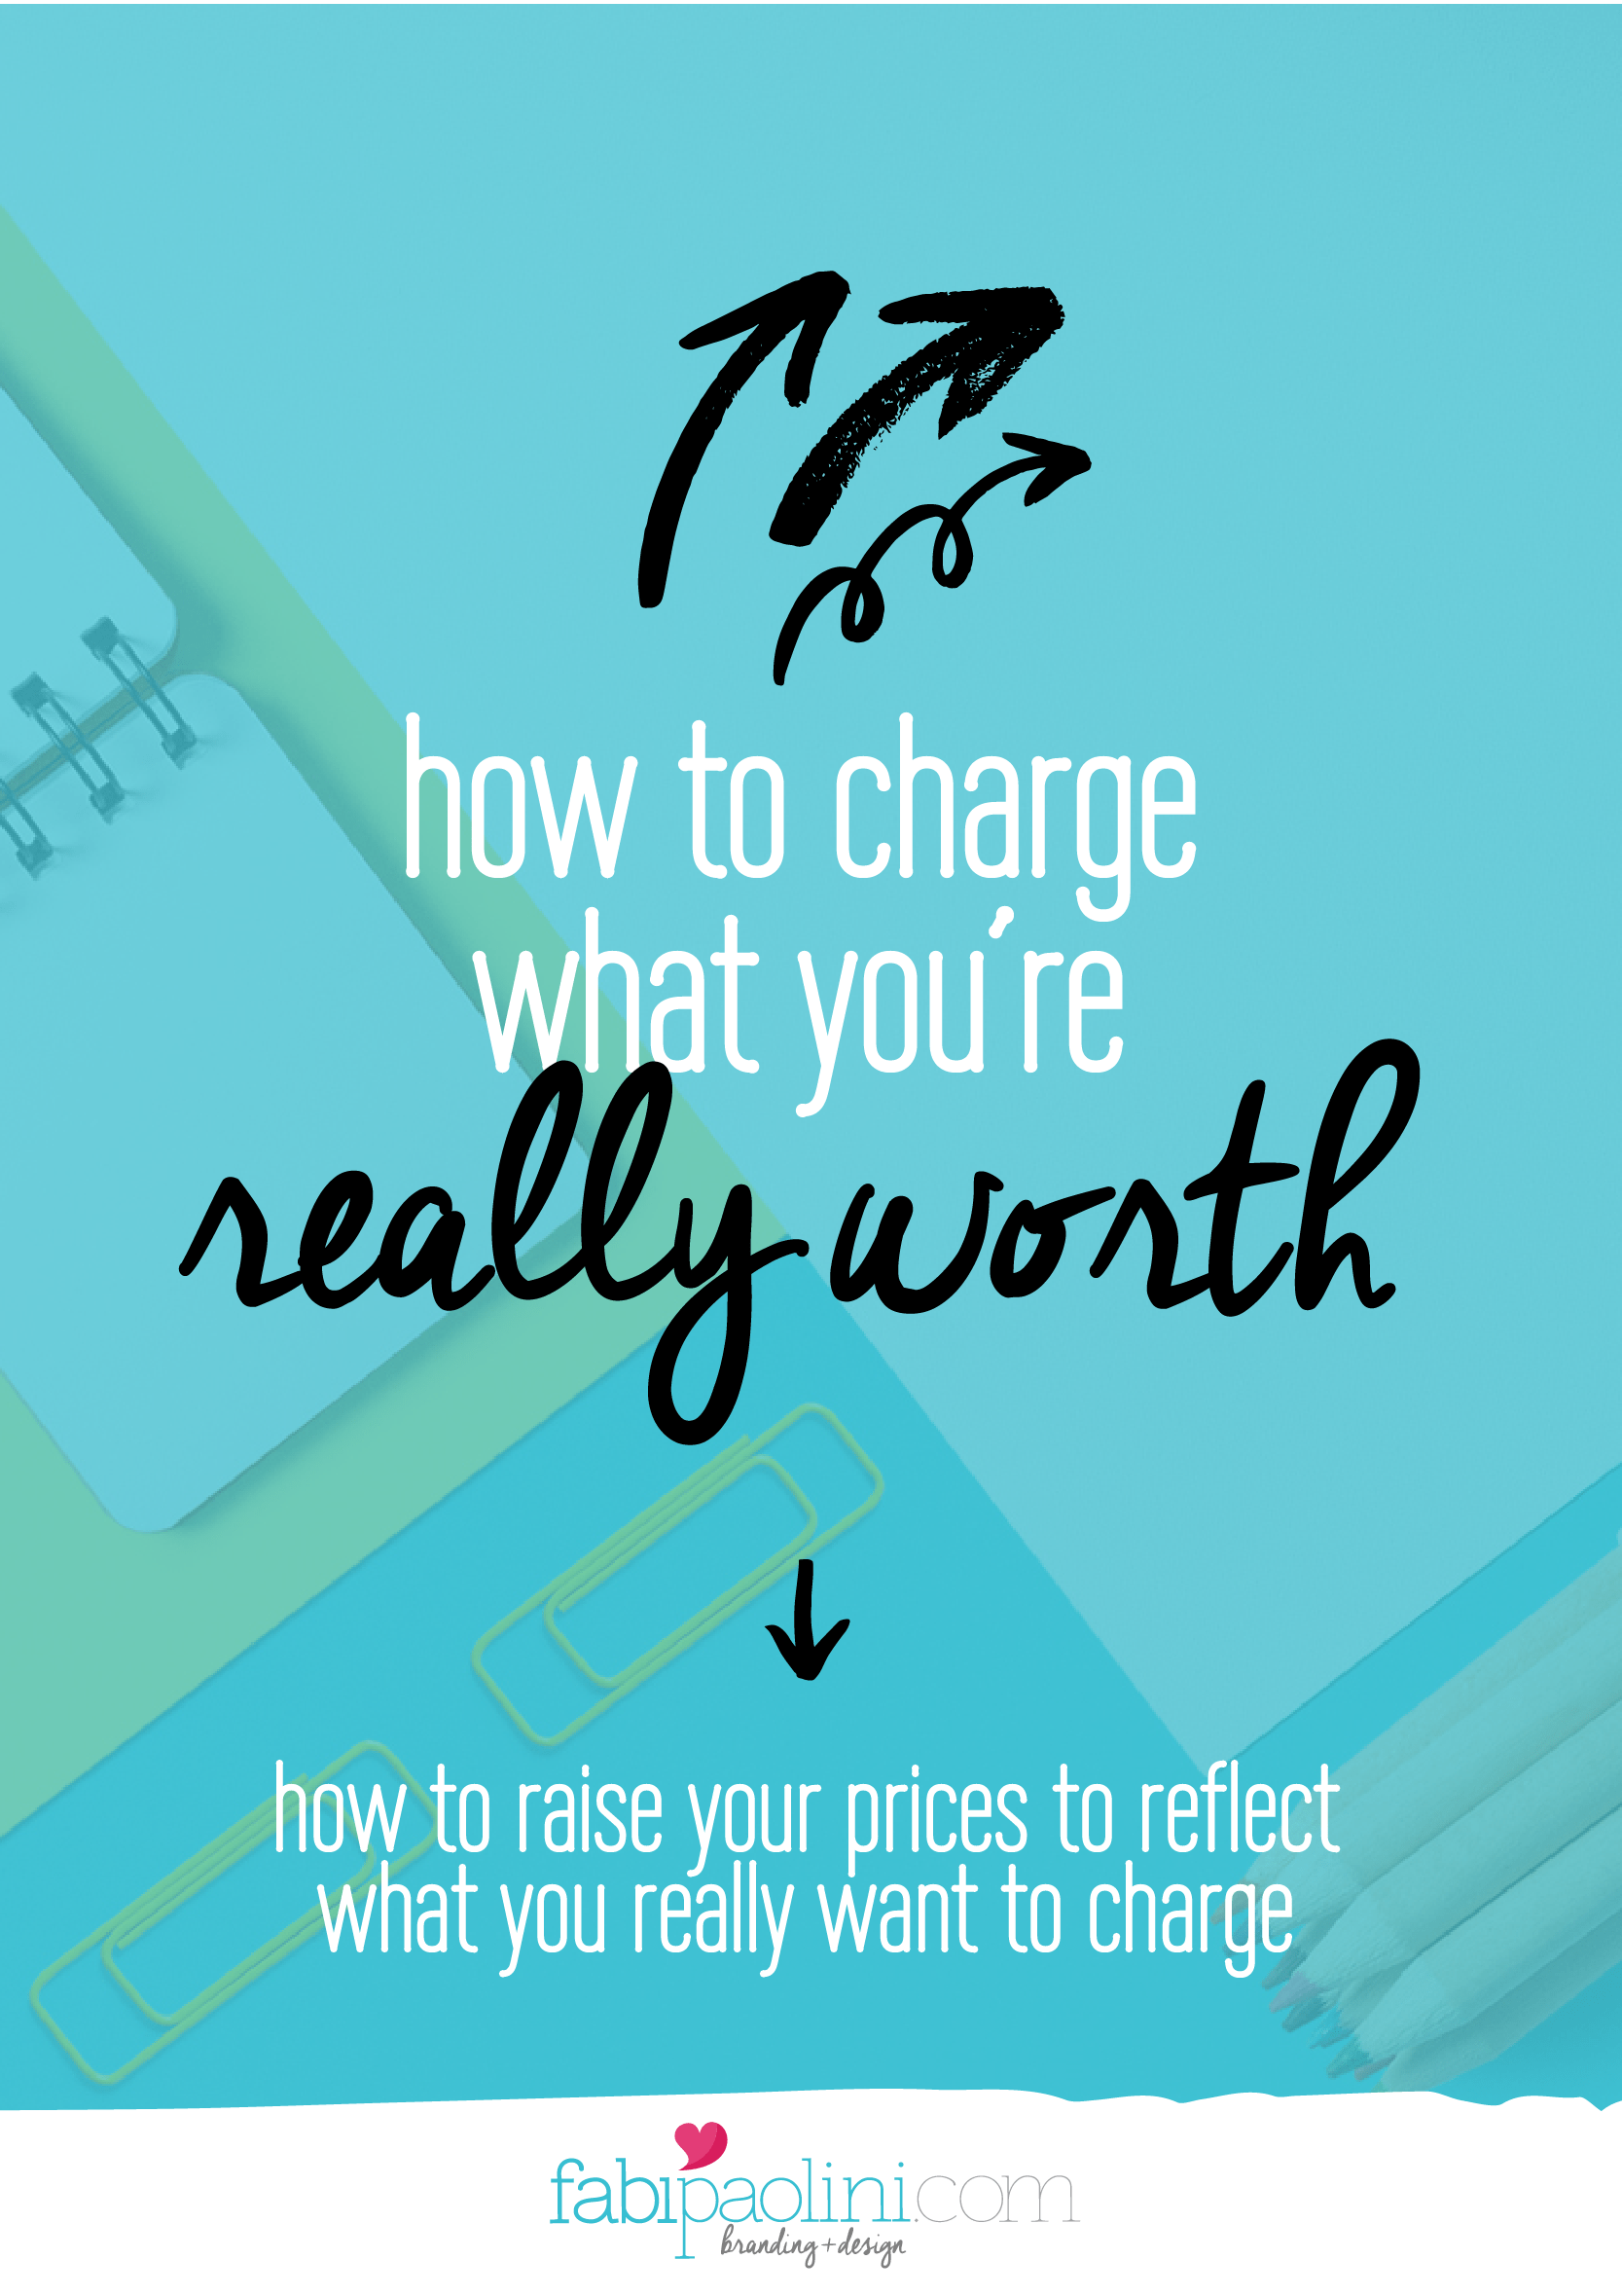 How to charge what you're really worth. What you need to know to raise your prices to reflect your value. Read on!